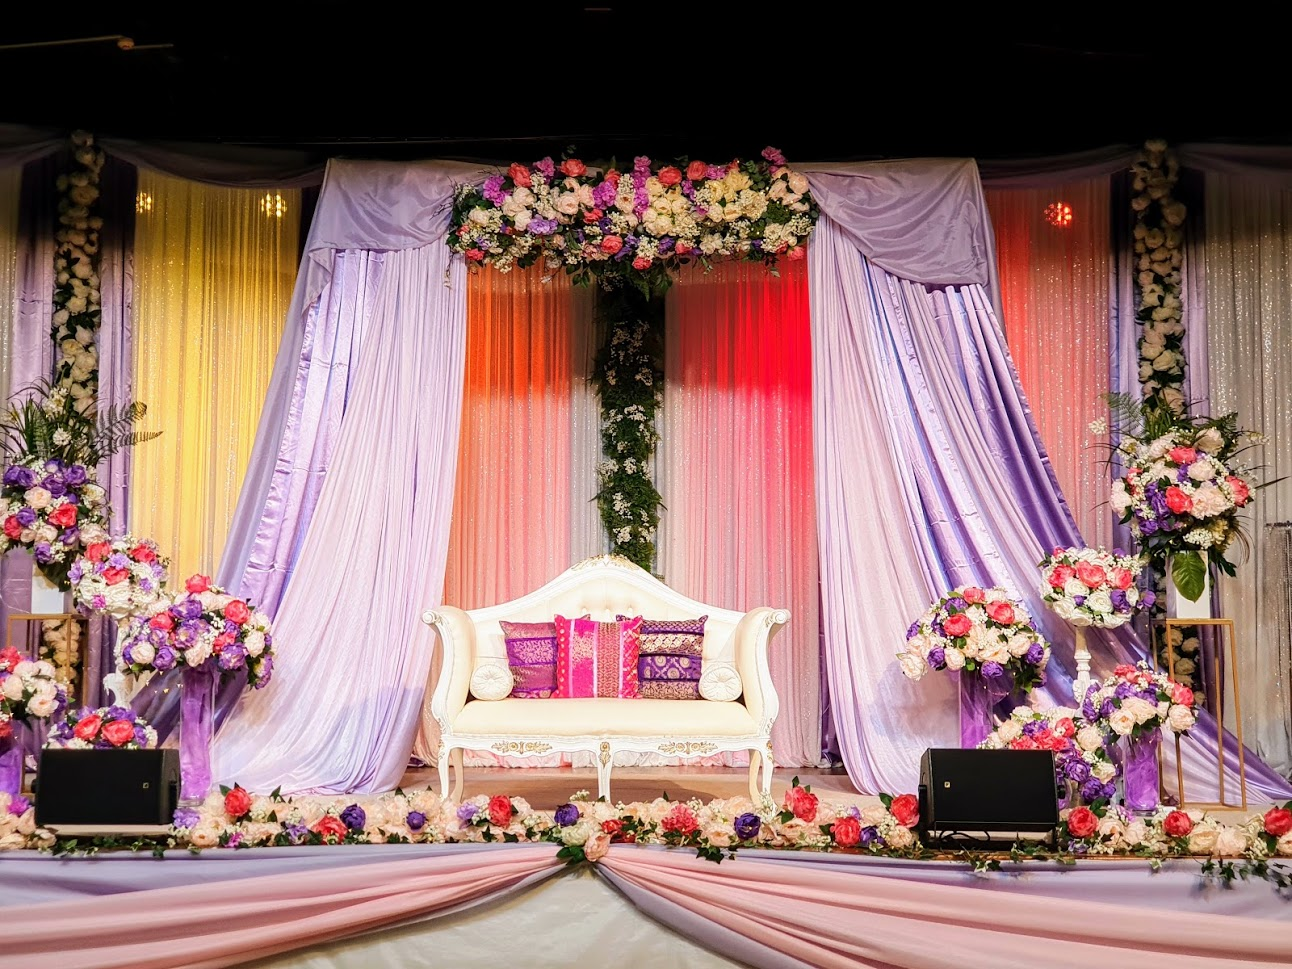 Indian Backdrop Stage lilac, white sequin, hot pink. pale pink, purple grouped floral arrangements